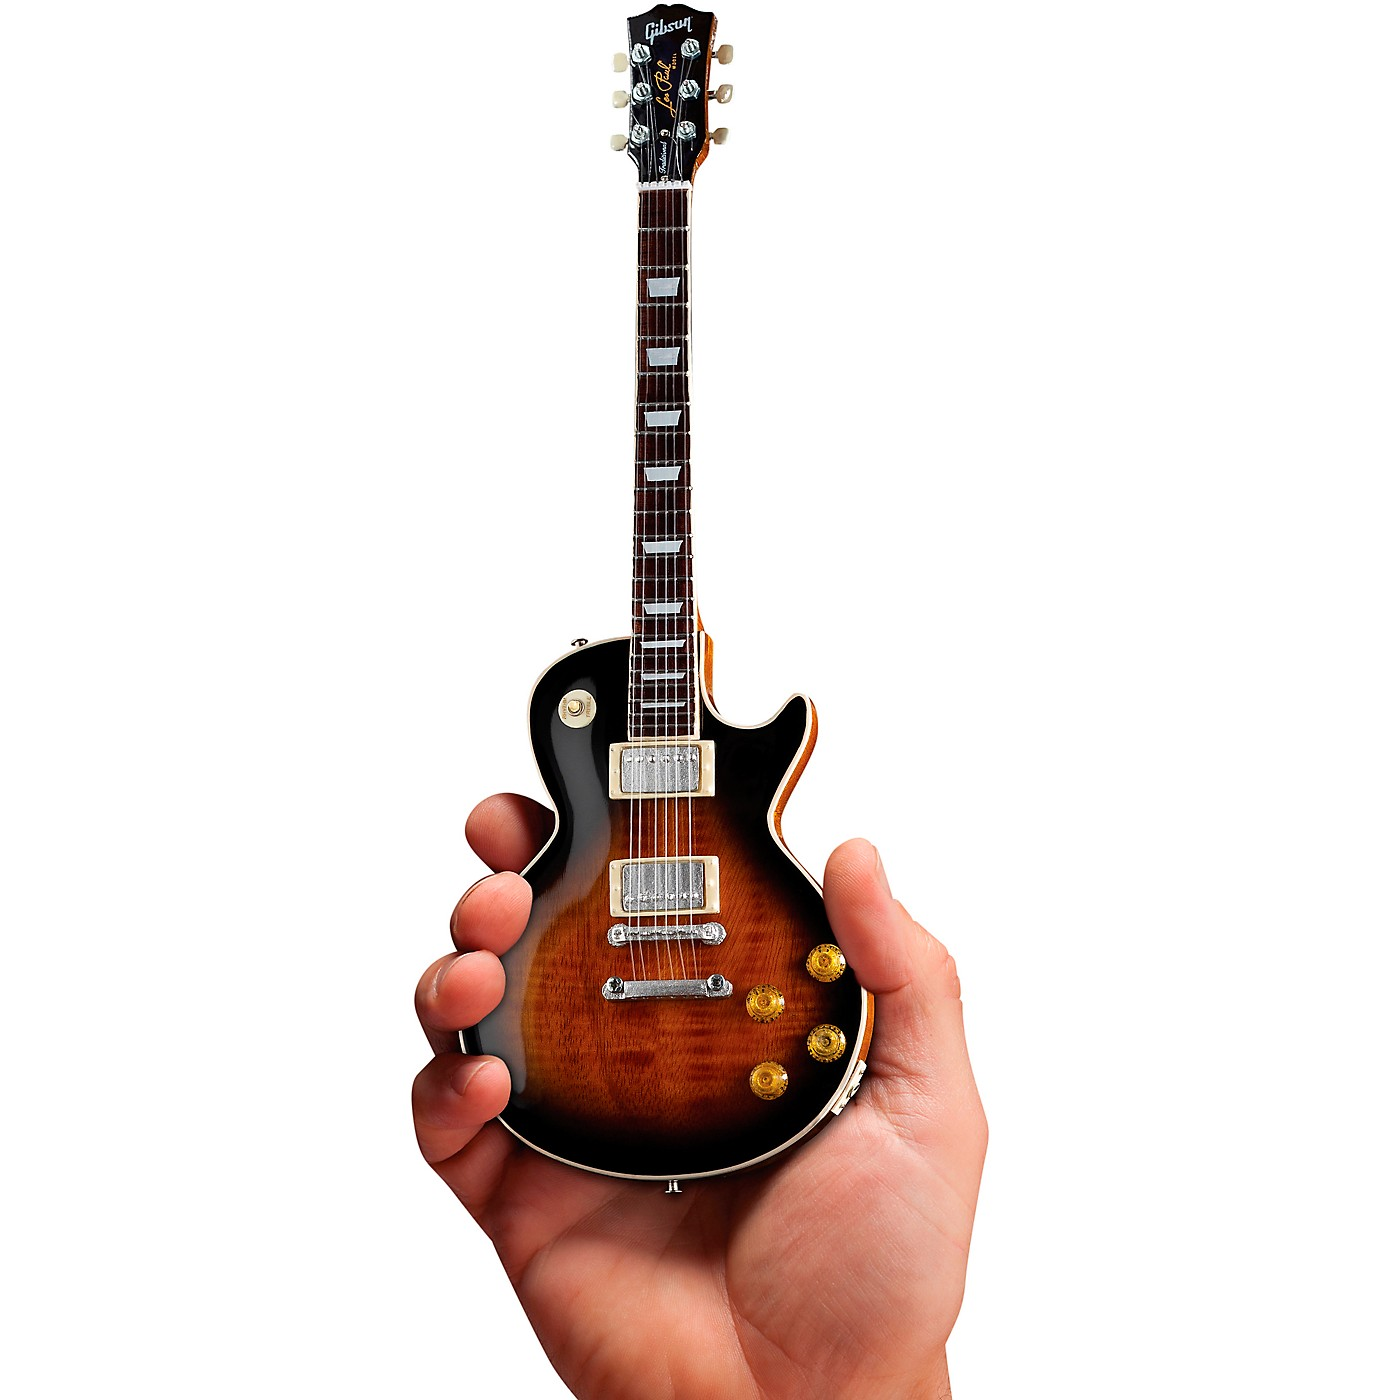 Axe Heaven Gibson Les Paul Traditional Tobacco Burst Officially Licensed Miniature Guitar Replica thumbnail